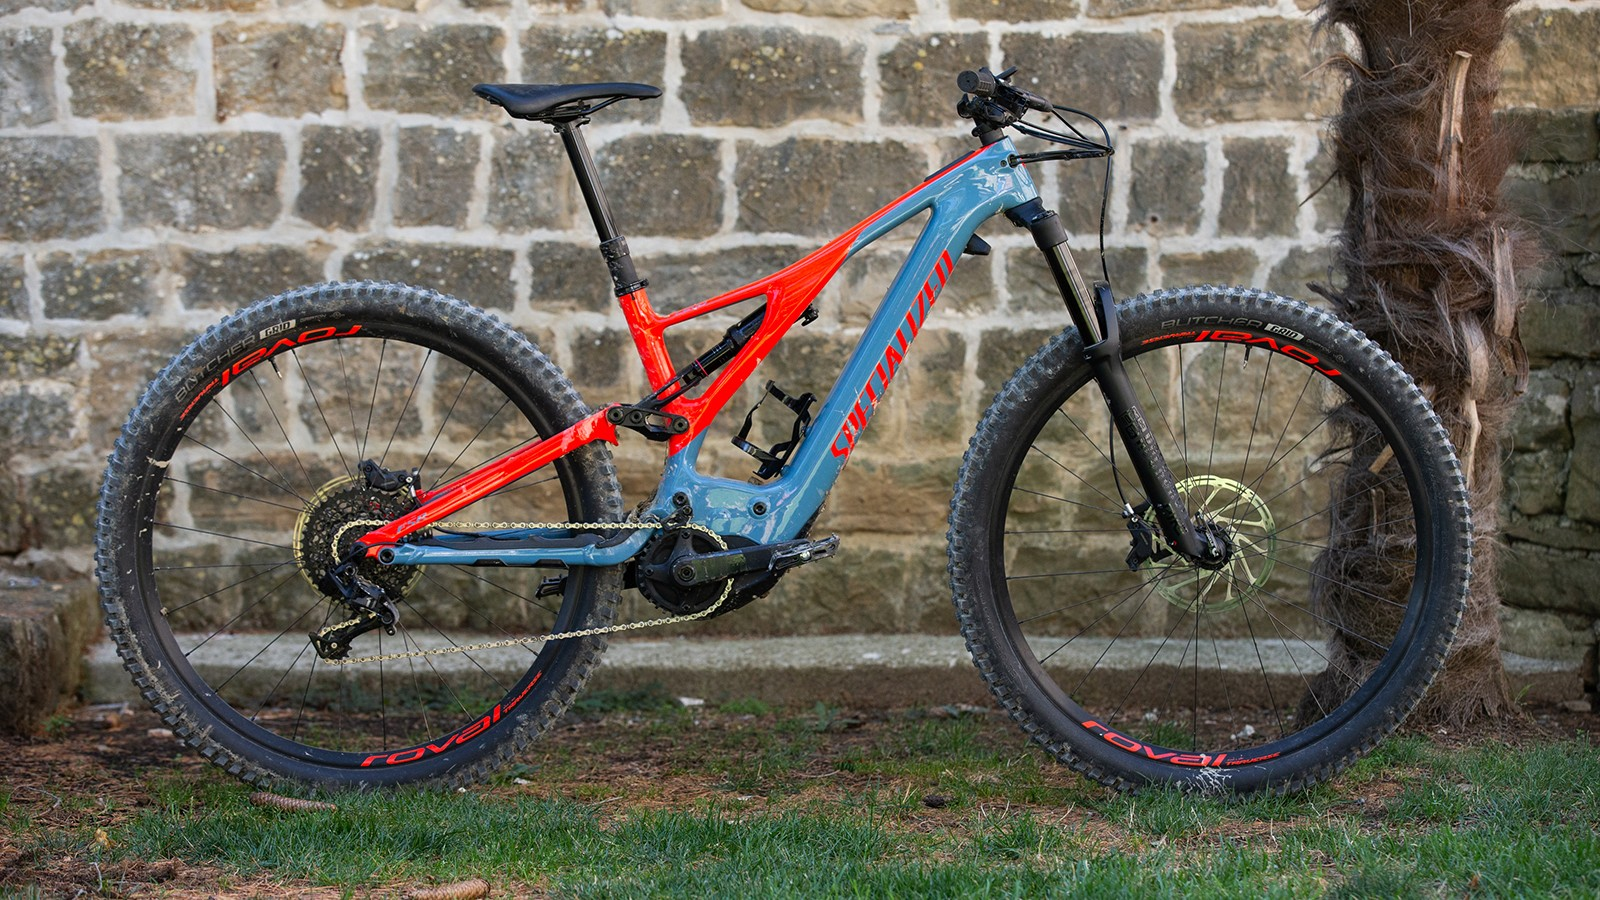 Specialized has completely overhauled the Turbo Levo range for 2019